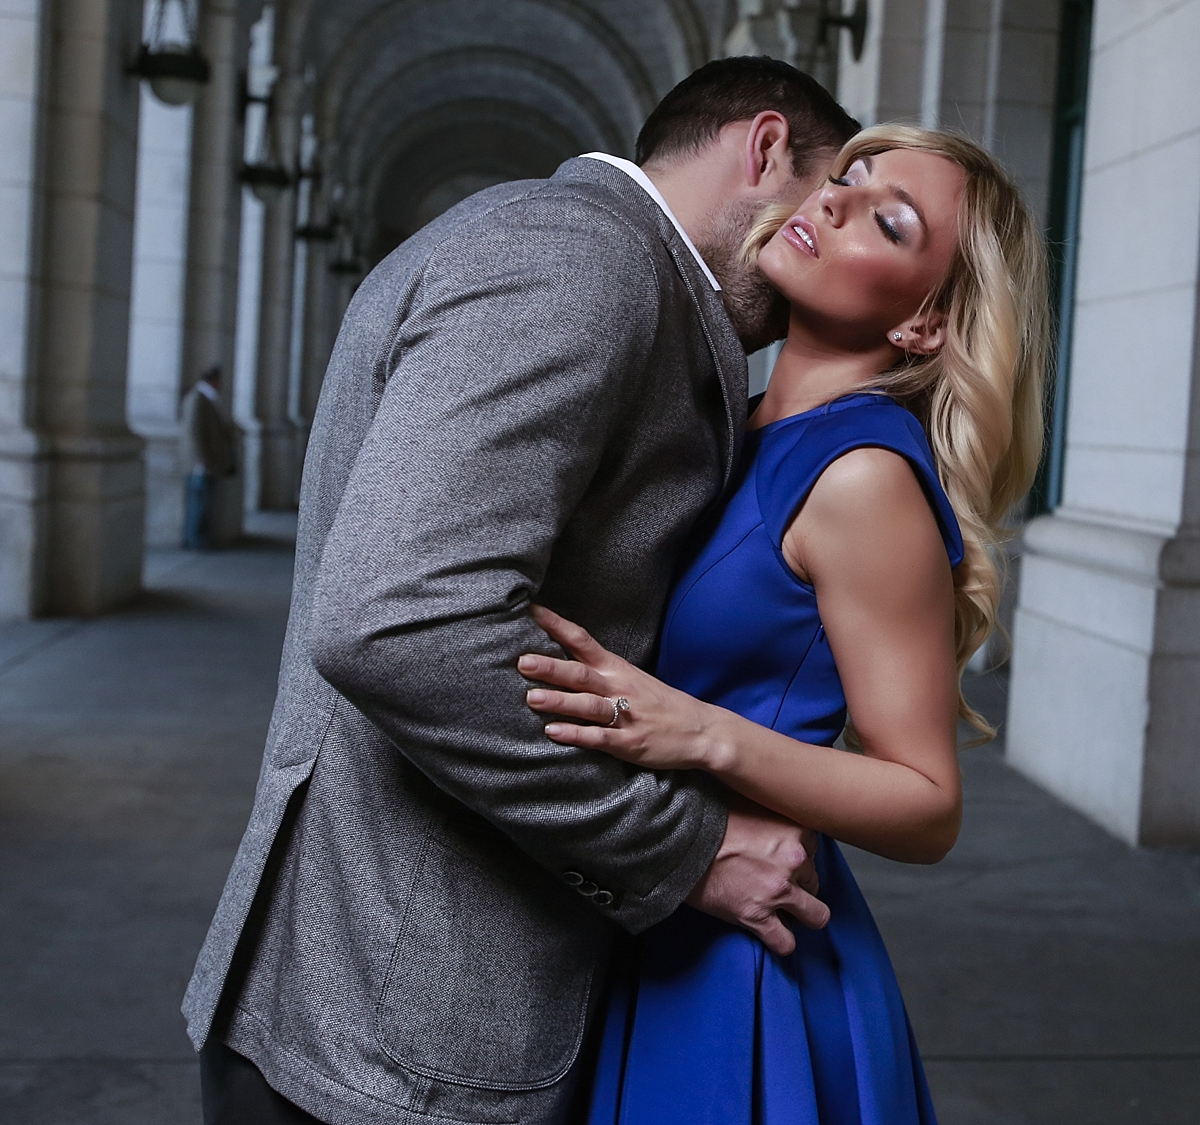 Washington DC Wedding Photographer | Cristina and Joe's Amazing Engagement Session!